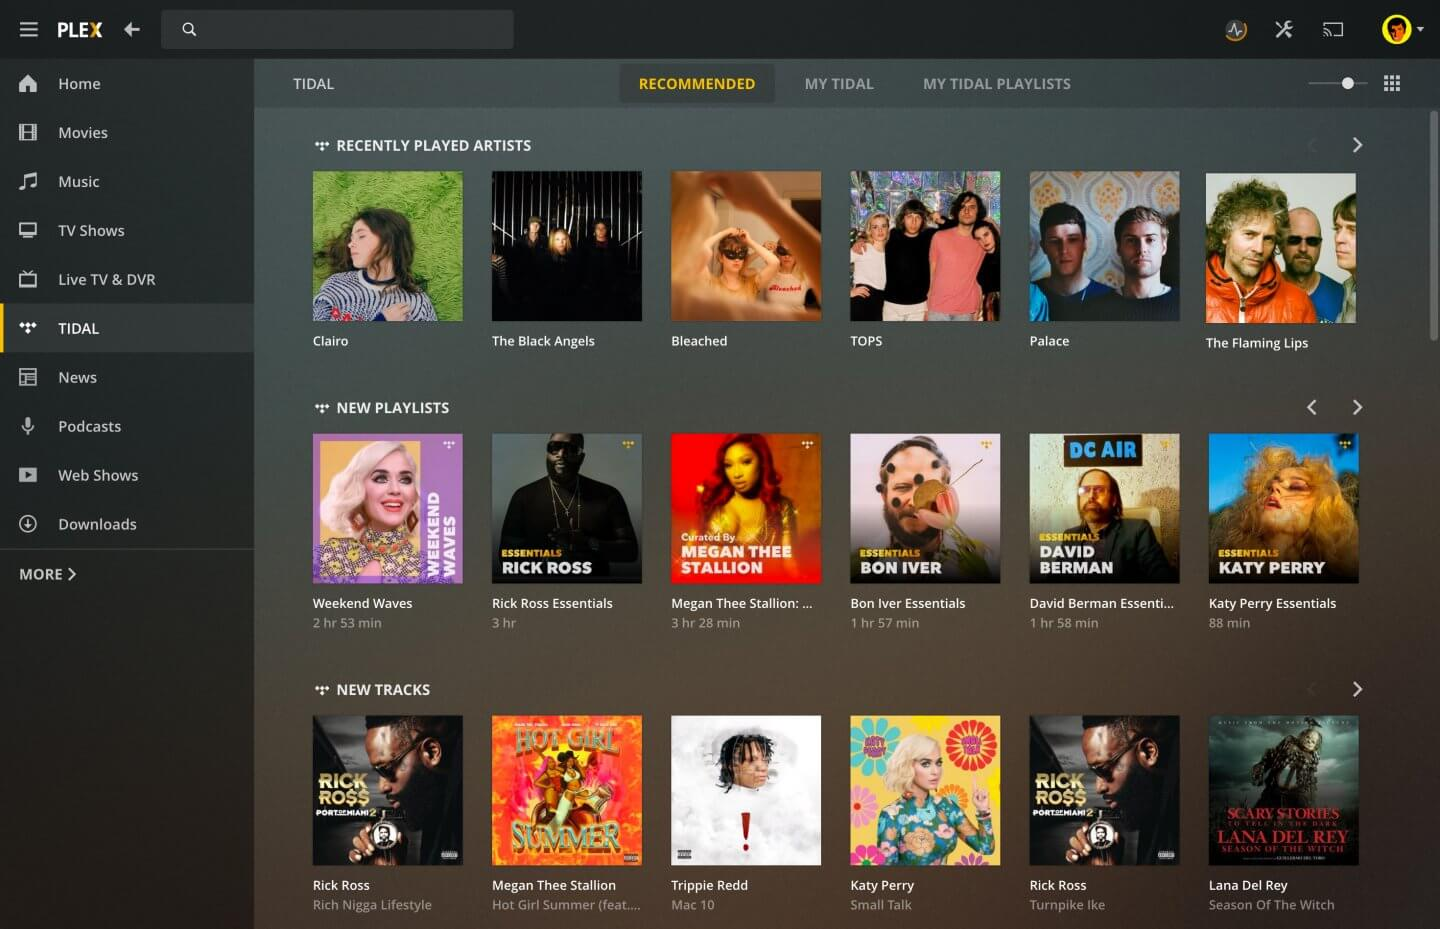 Plex is retiring their Microsoft Store app